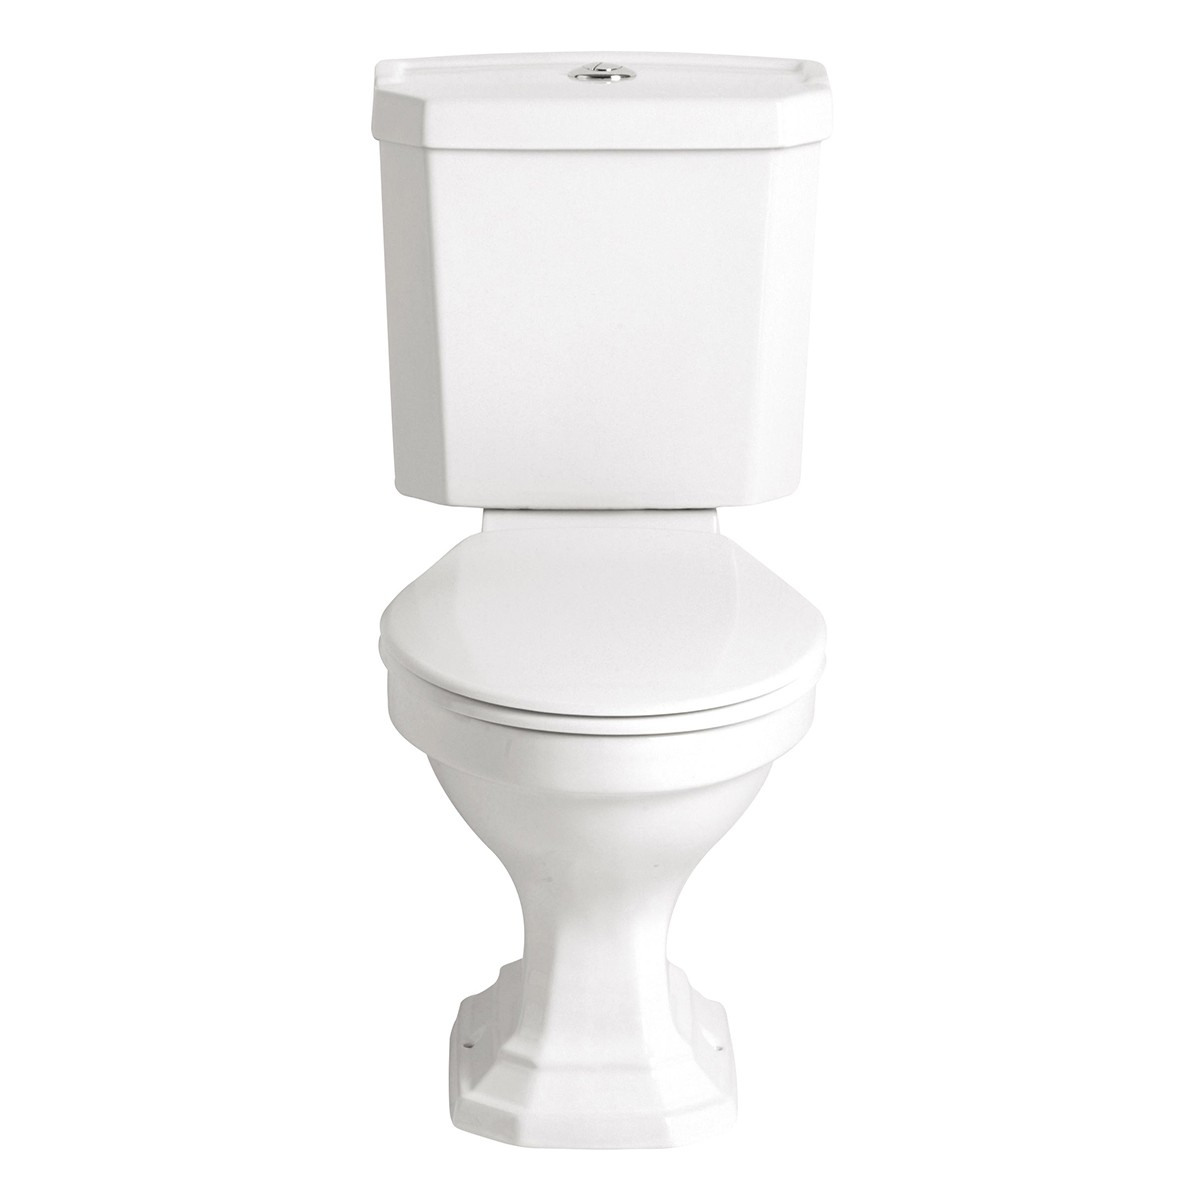 Heritage granley granley deco close coupled wc leigh plumbing merchants - Wc opgeschort deco ...